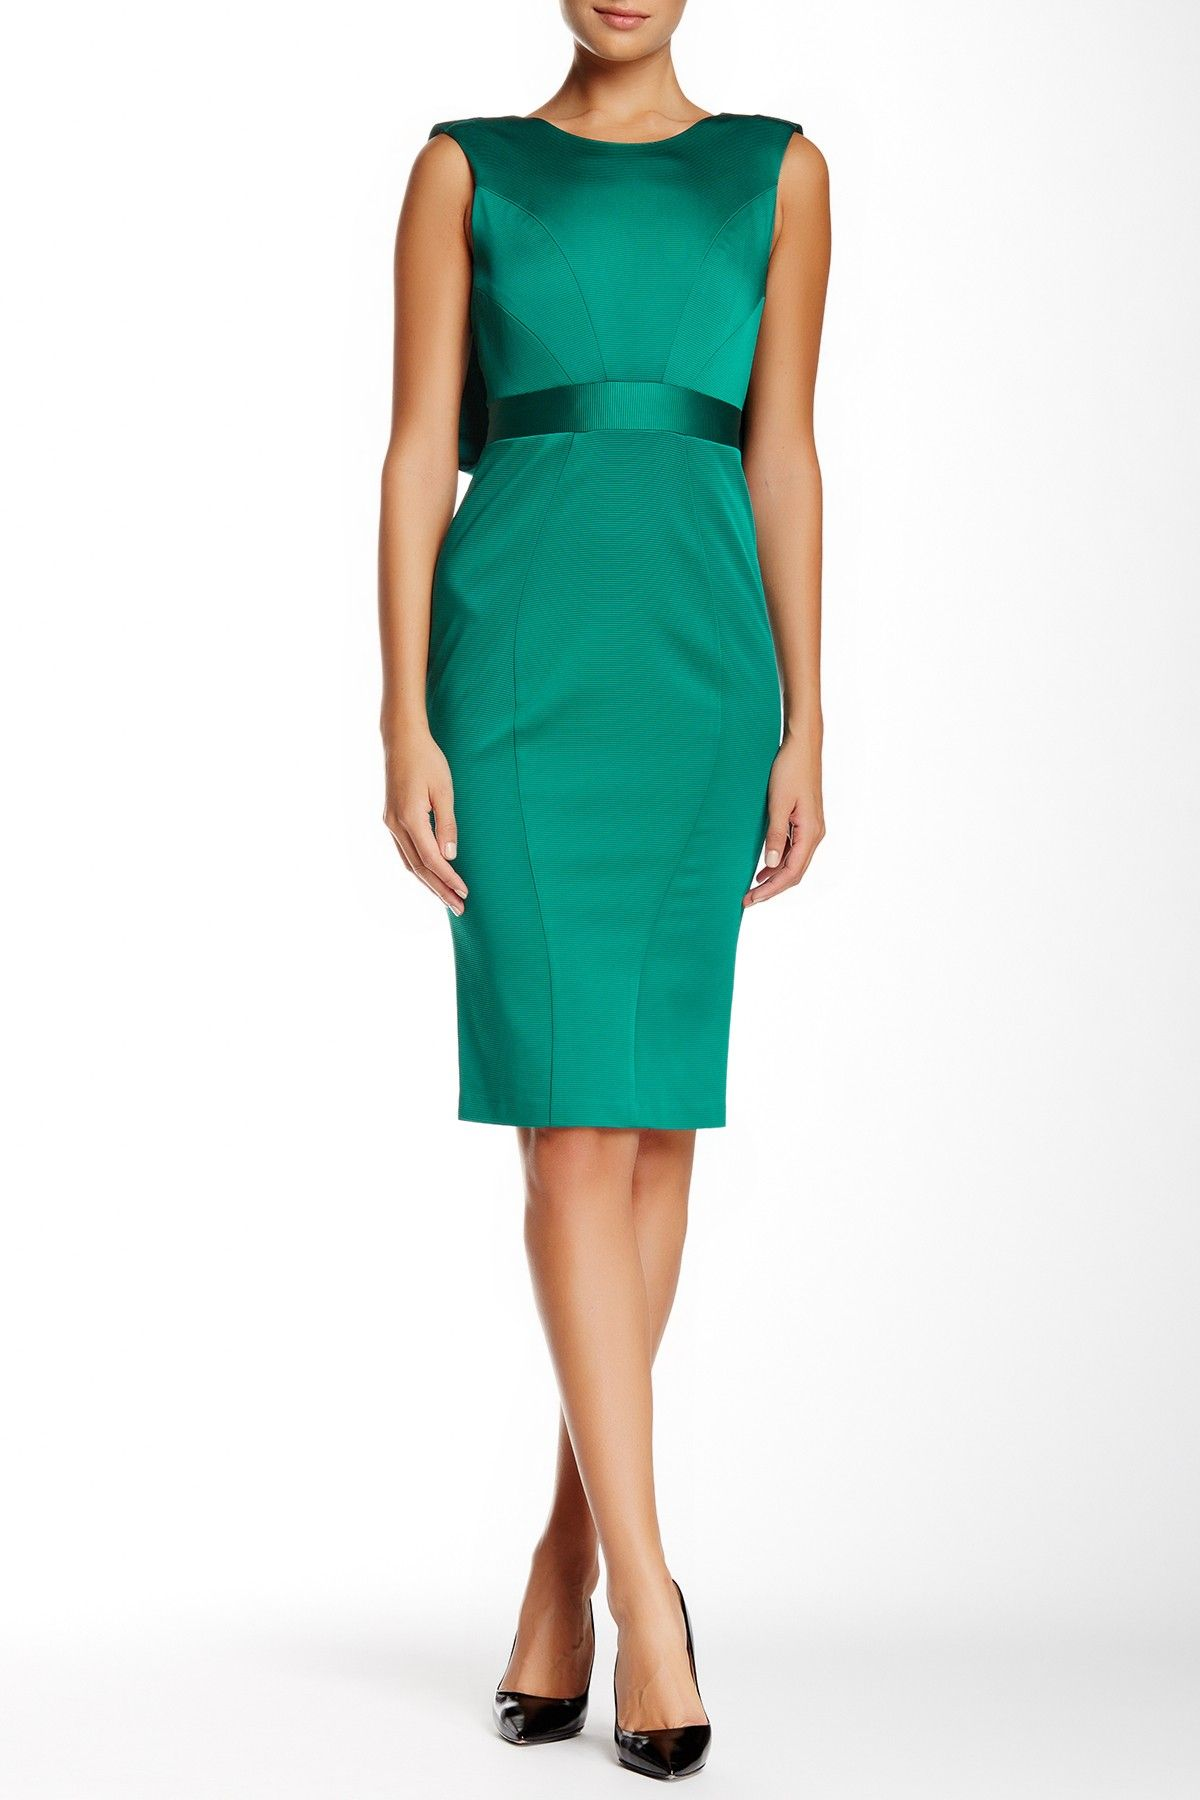 Santina Dress by ZAC Zac Posen on @HauteLook